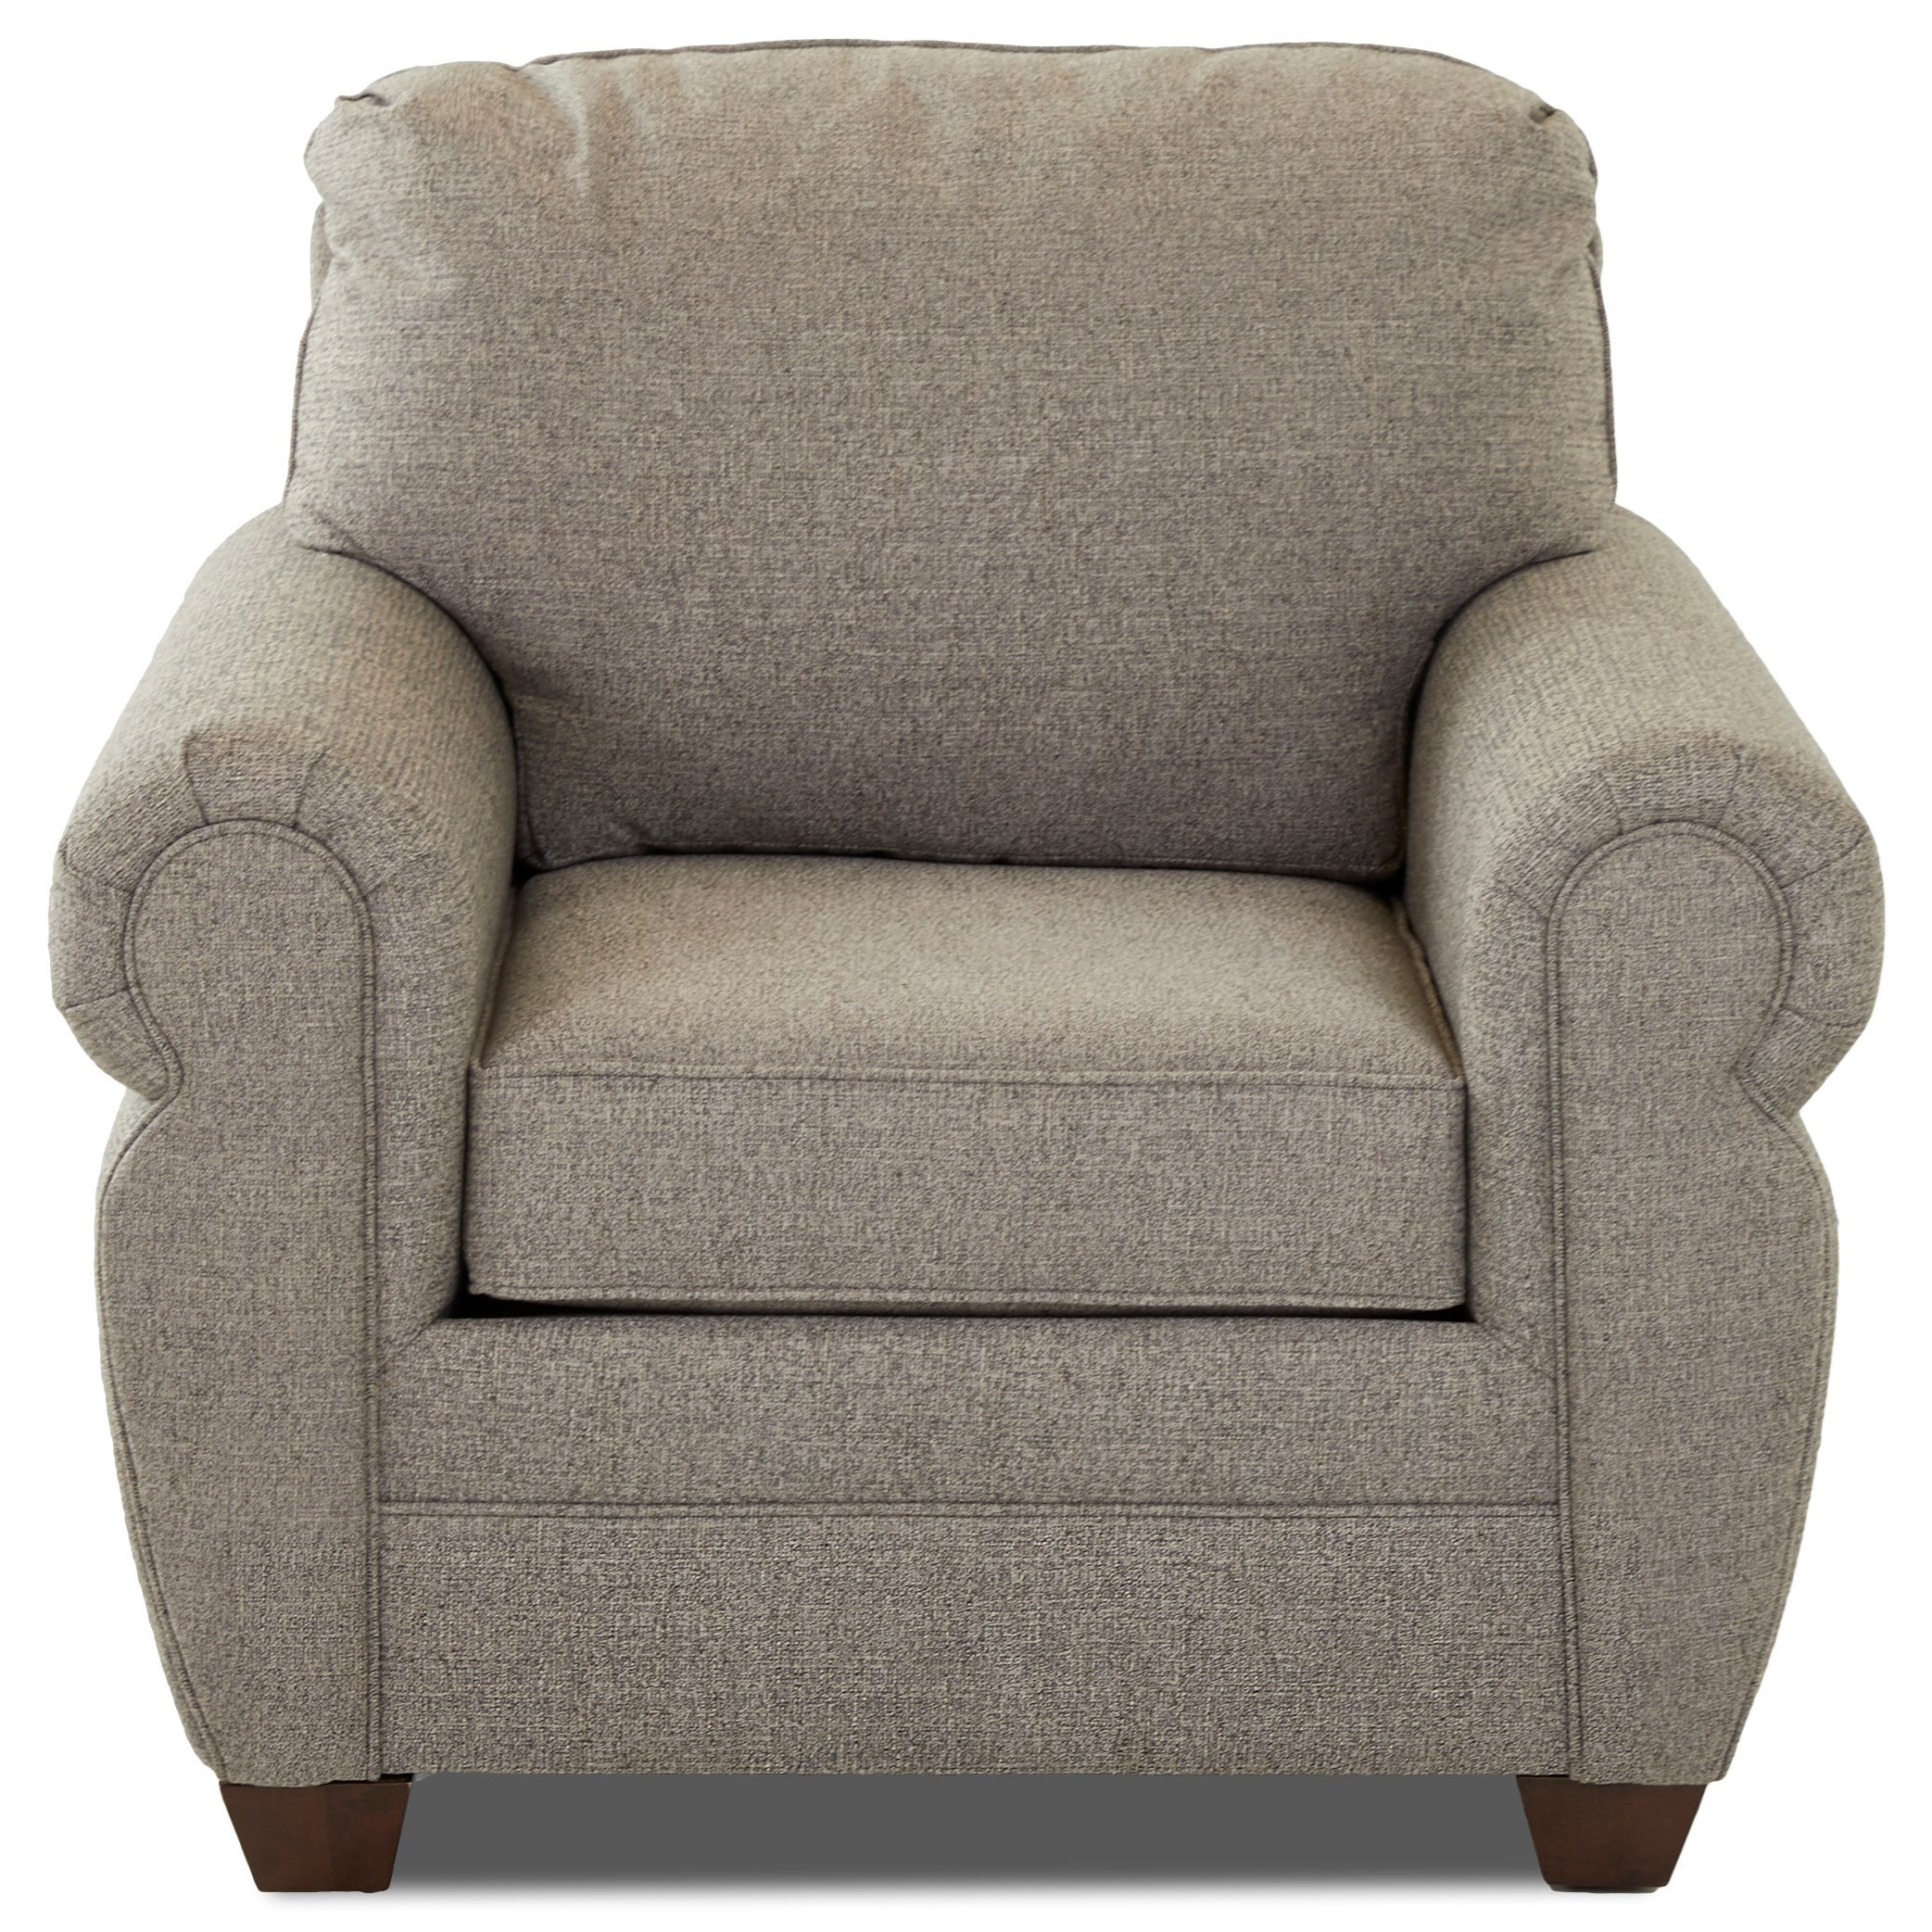 Westbrook Upholstered Chair by Klaussner at Johnny Janosik